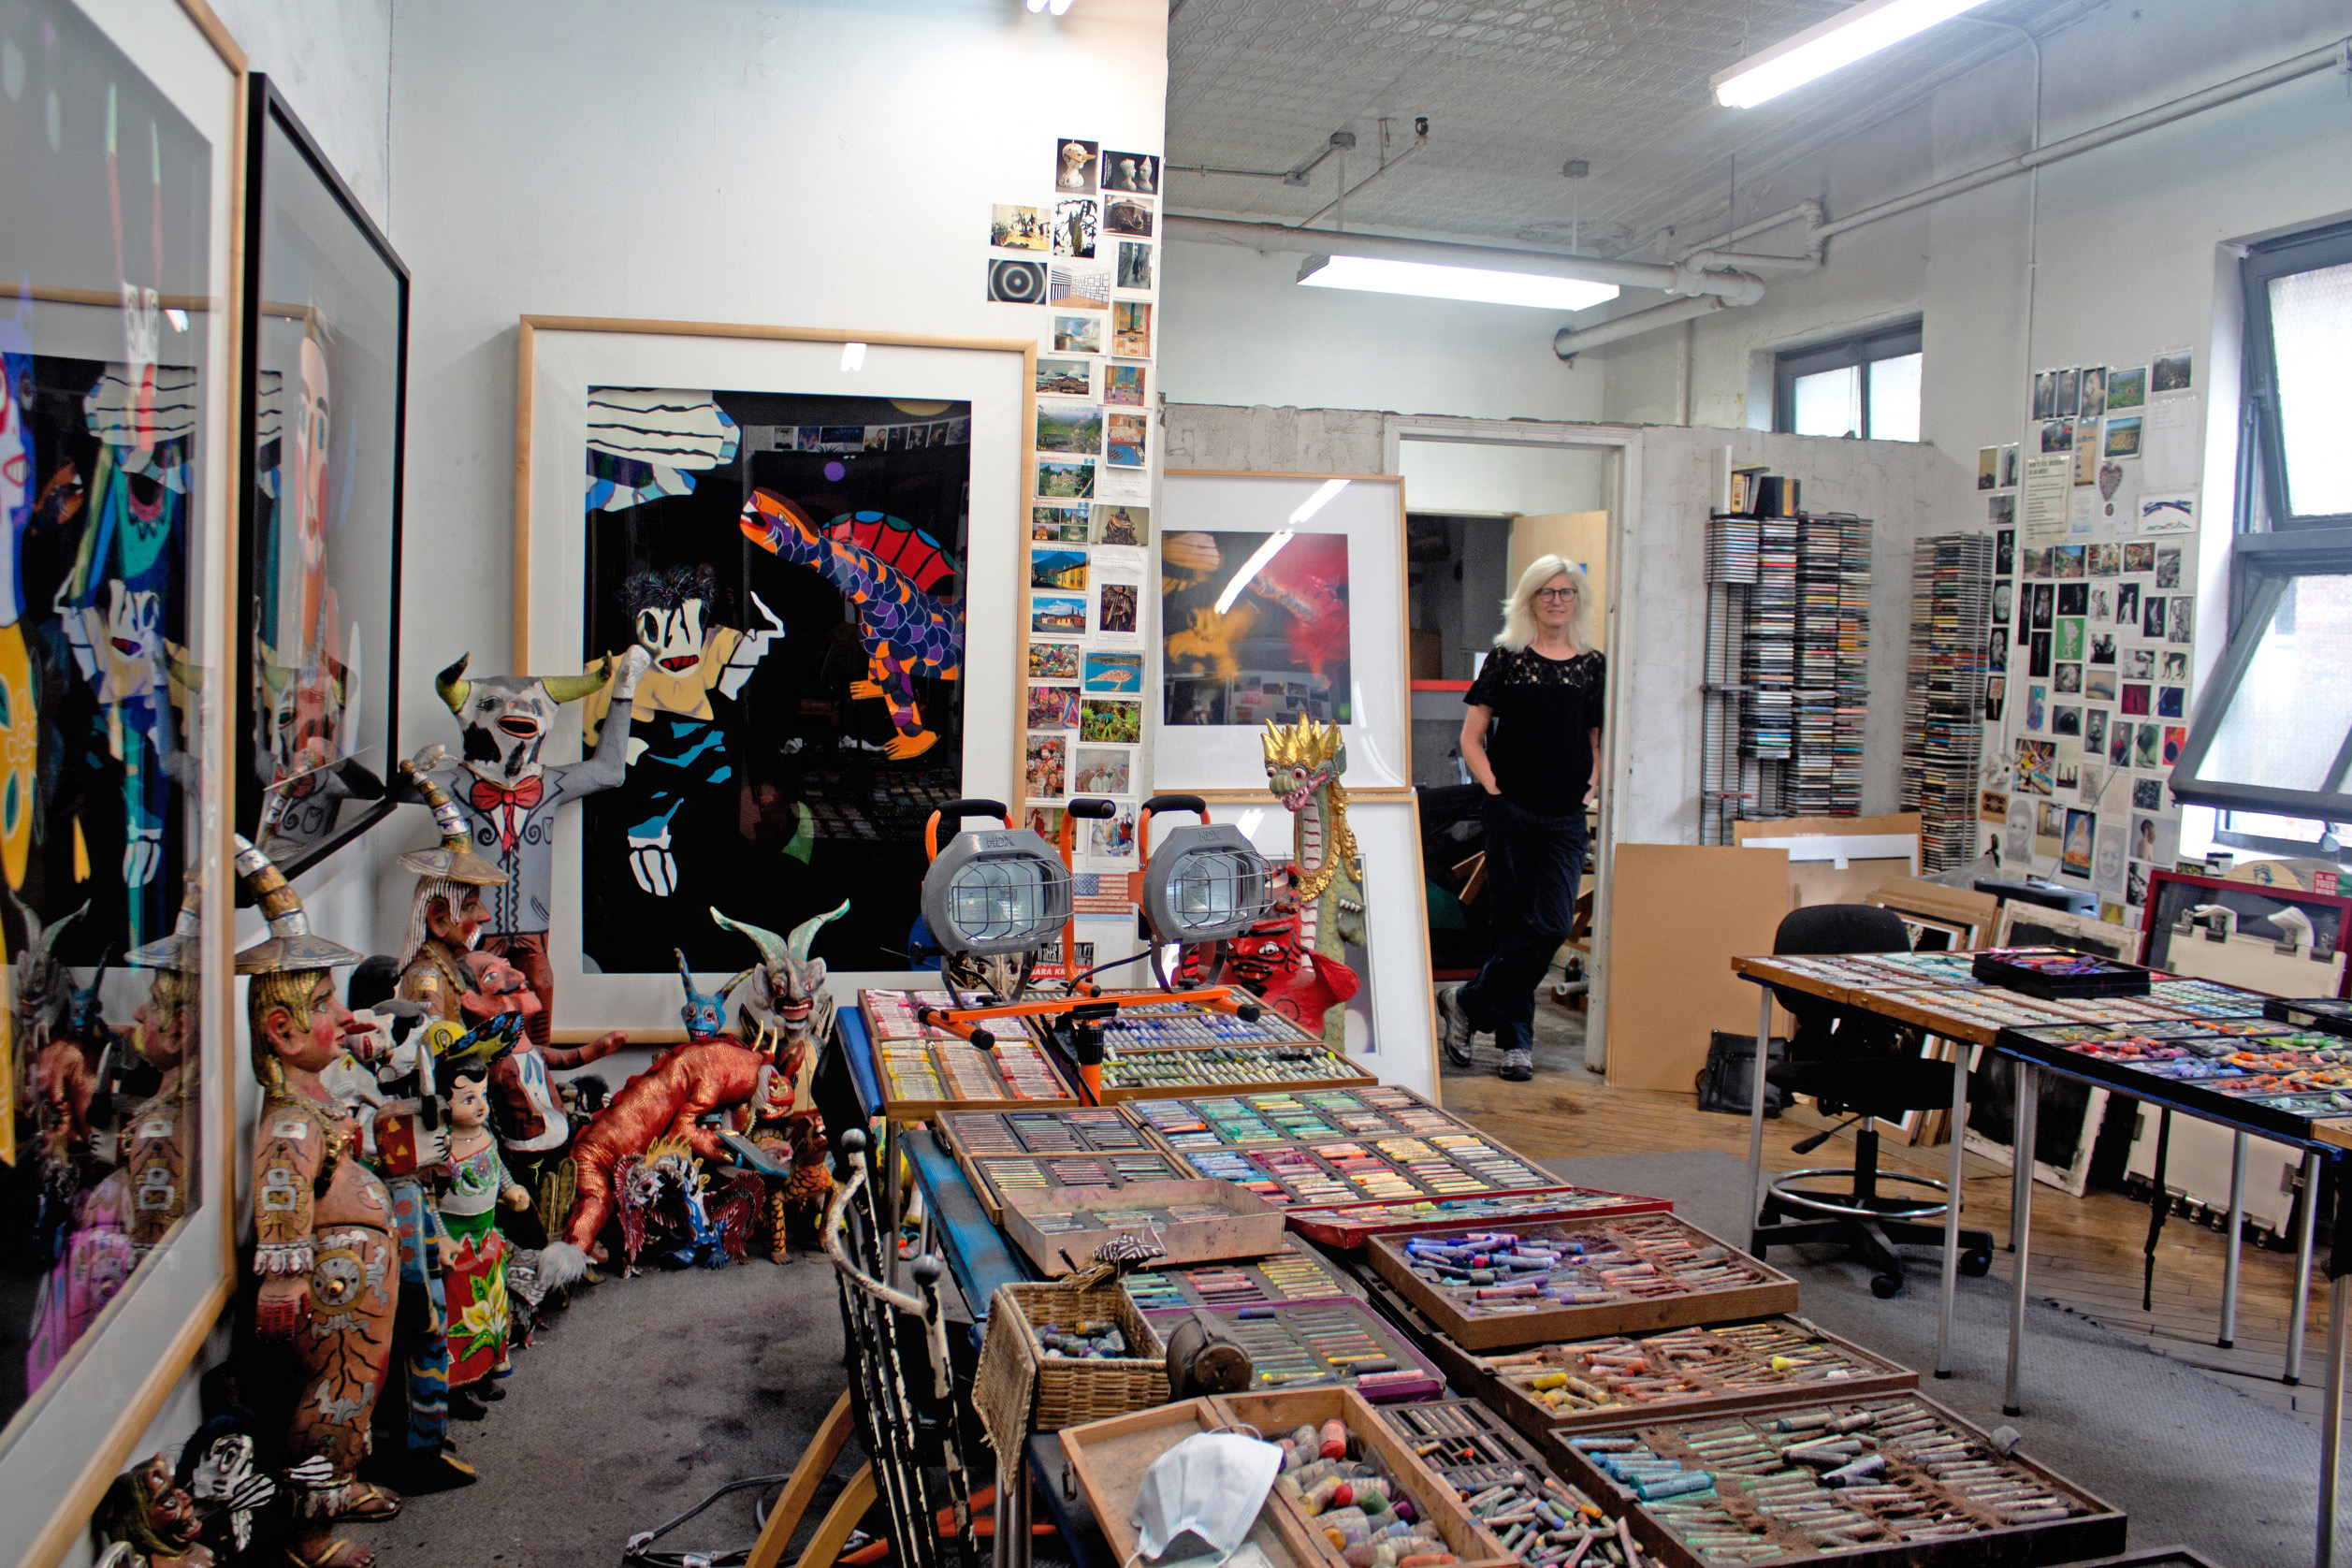 Barbara in her studio, Photo: Izzy Nova